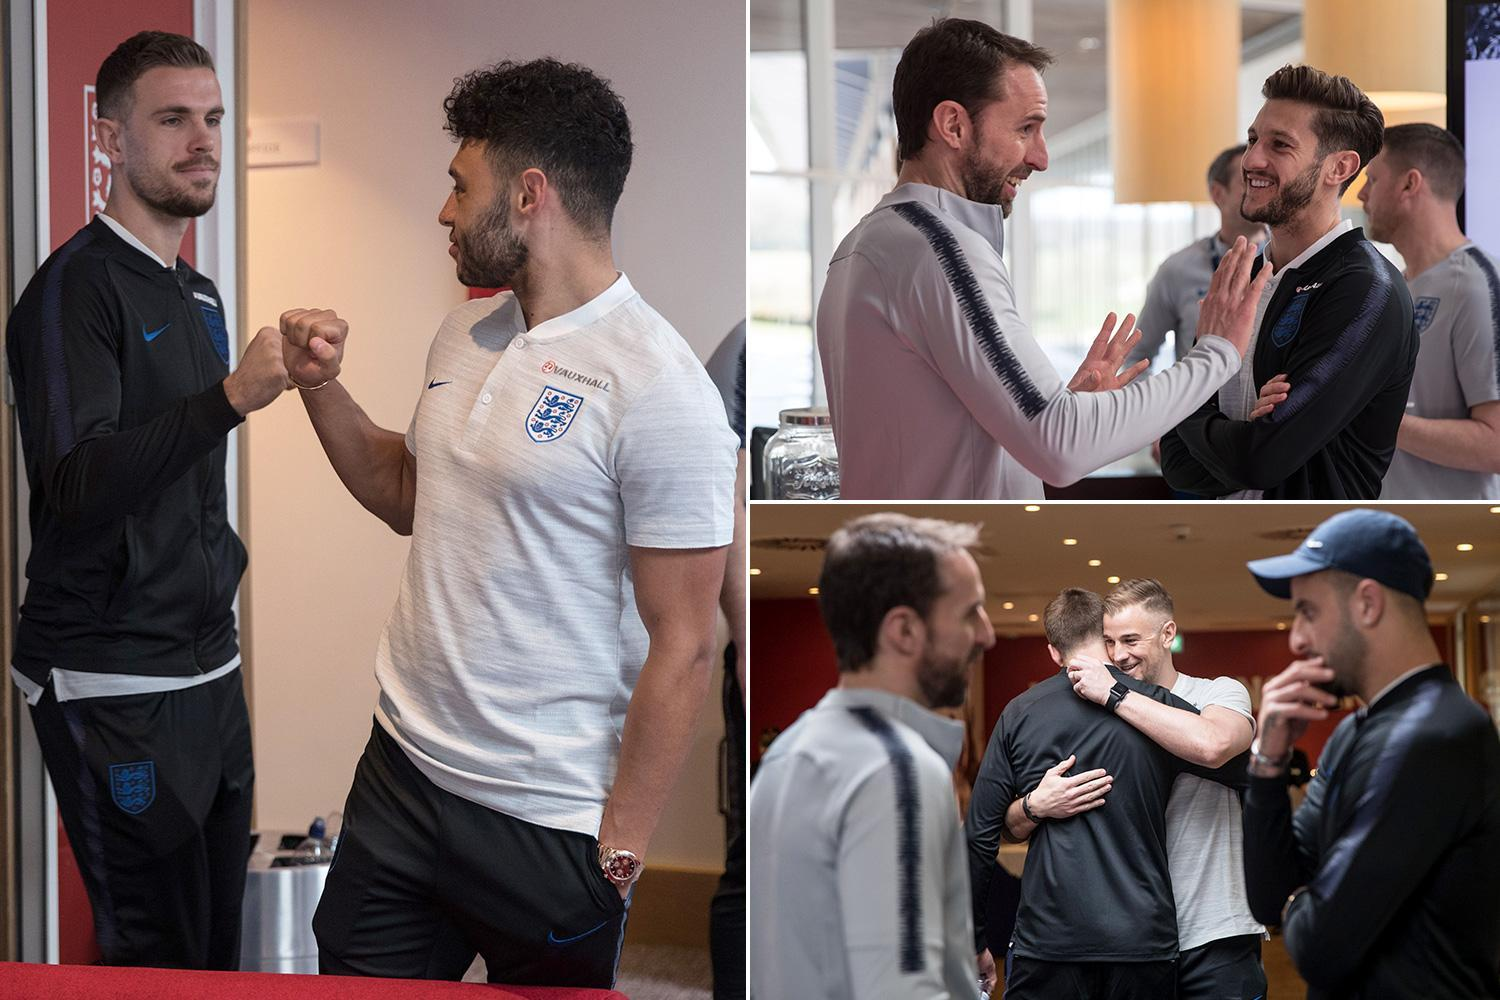 England squad look tight knit as stars greet each other on first england squad look tight knit as stars greet each other on first meet up m4hsunfo